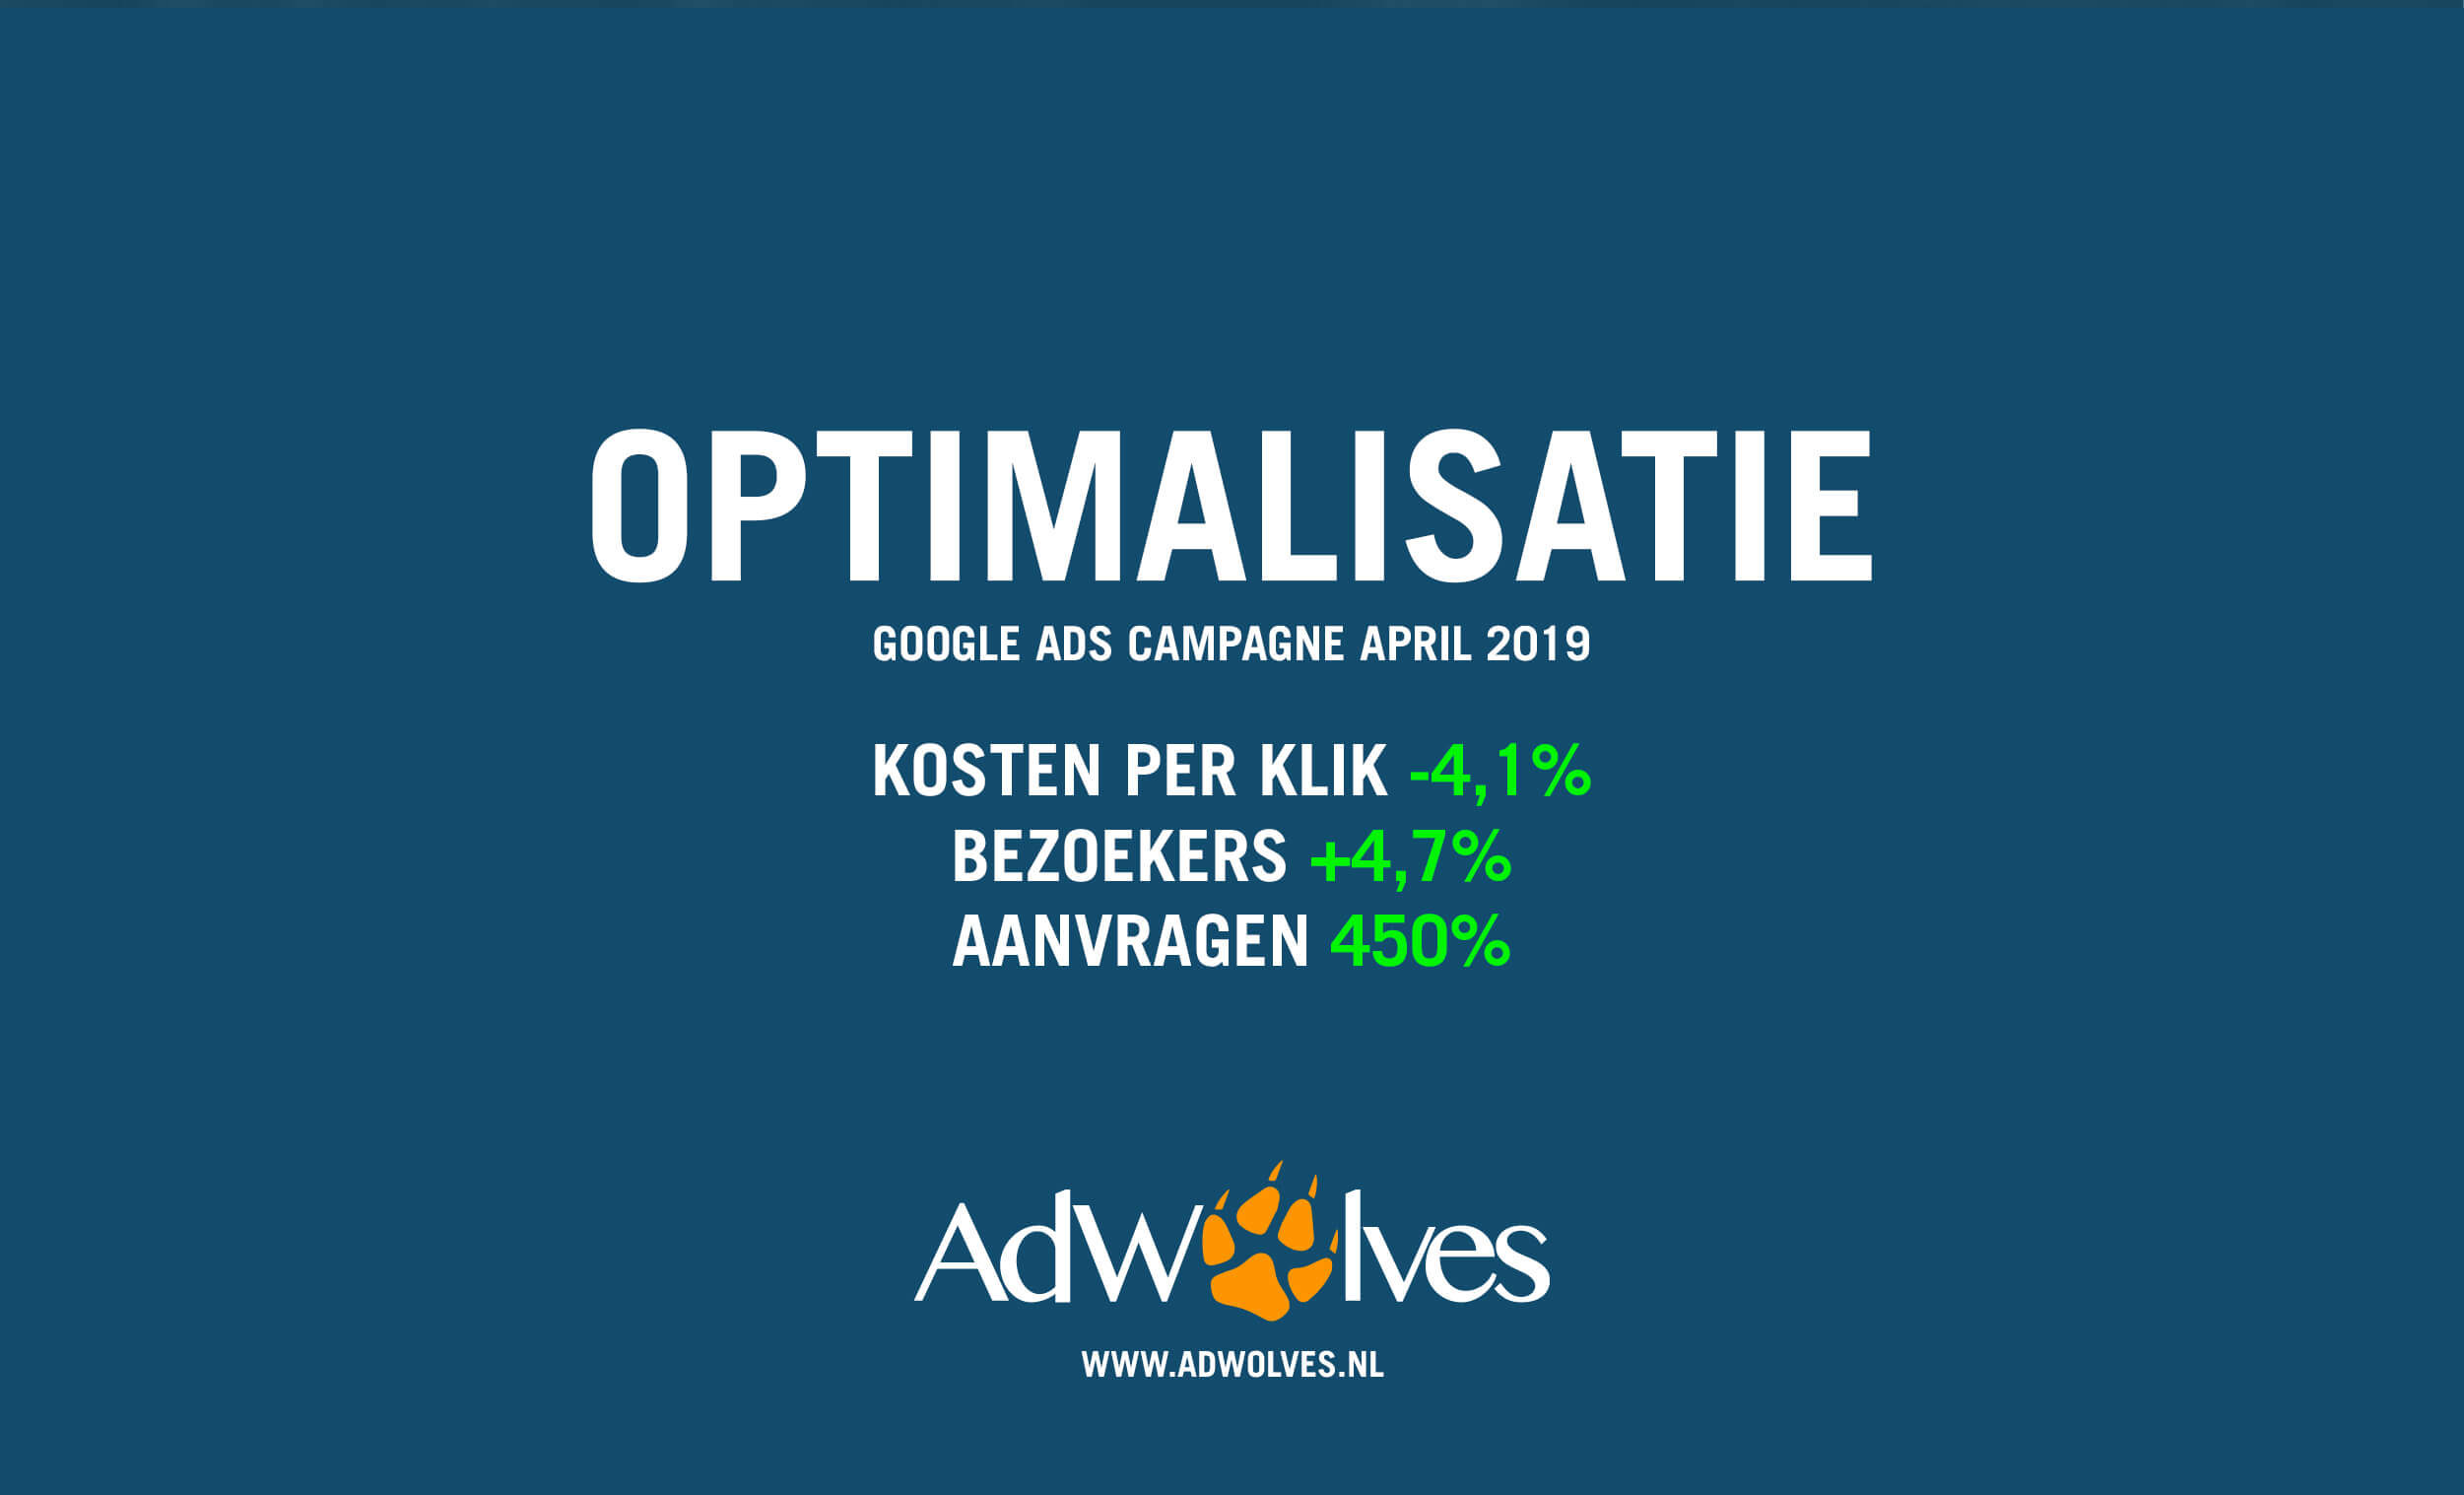 //adwolves.nl/wp-content/uploads/google-ads-optimalisatie-april.jpg